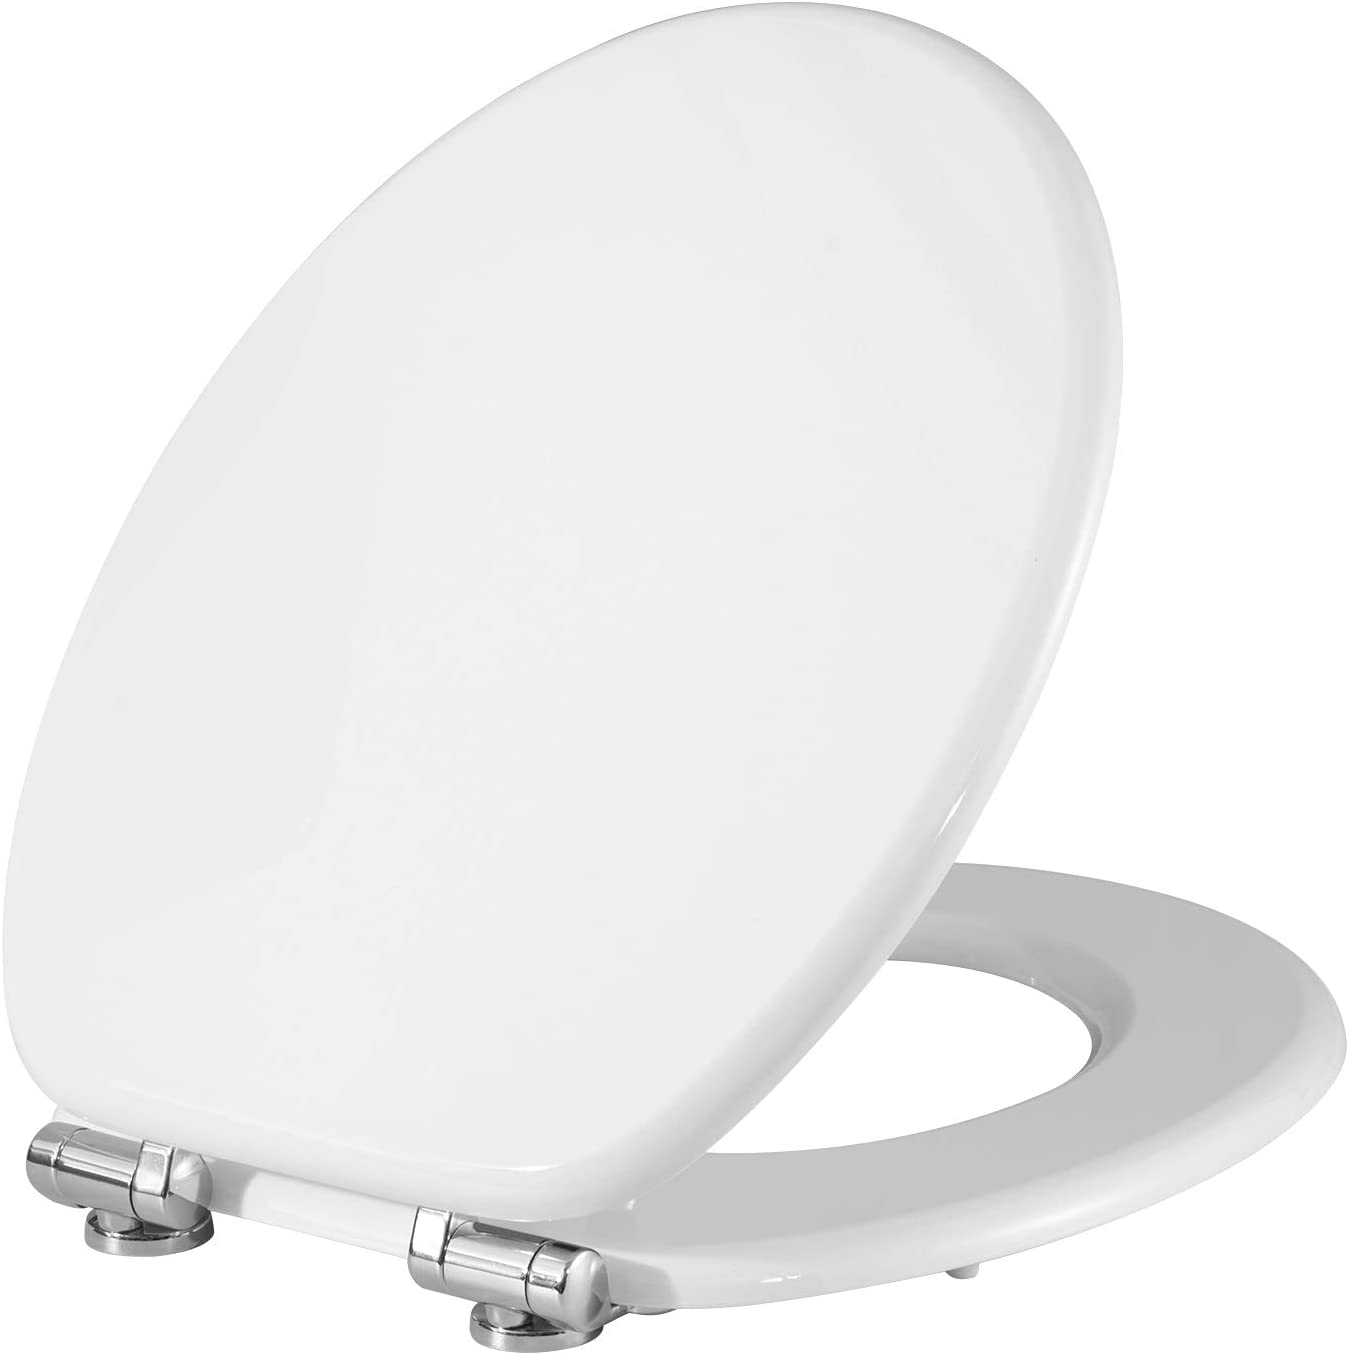 Soft Close WC Seat with Strong Hinge Ideal for Standard Toilet WOLTU Toilet Seat Wood